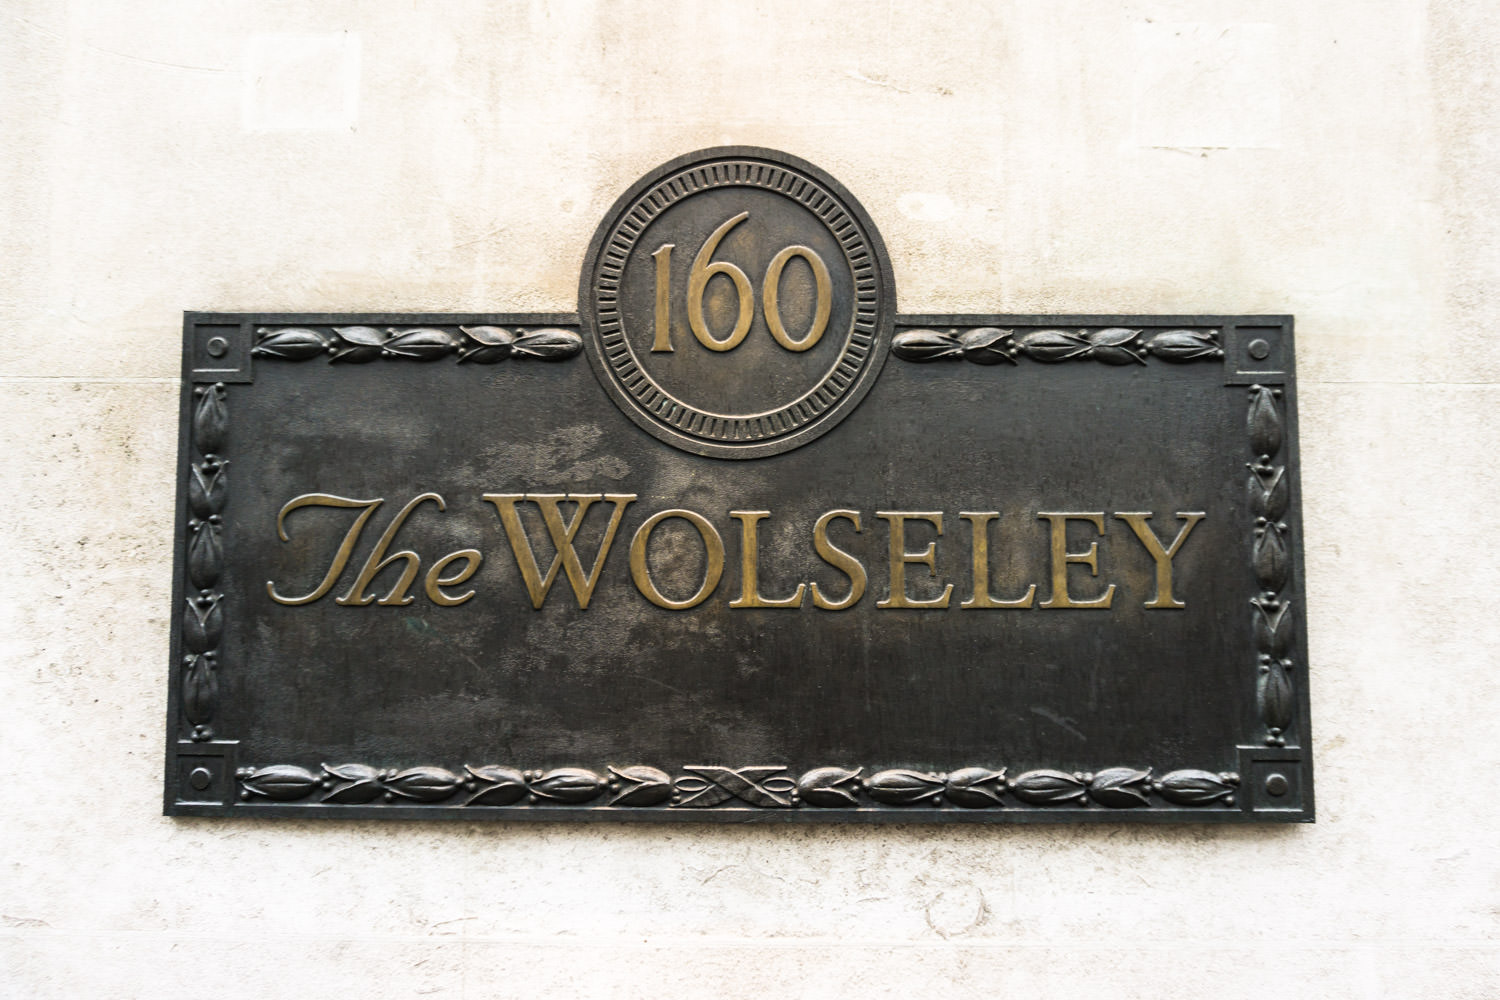 cocktail_saturdays_the_wolseley-7073.jpg